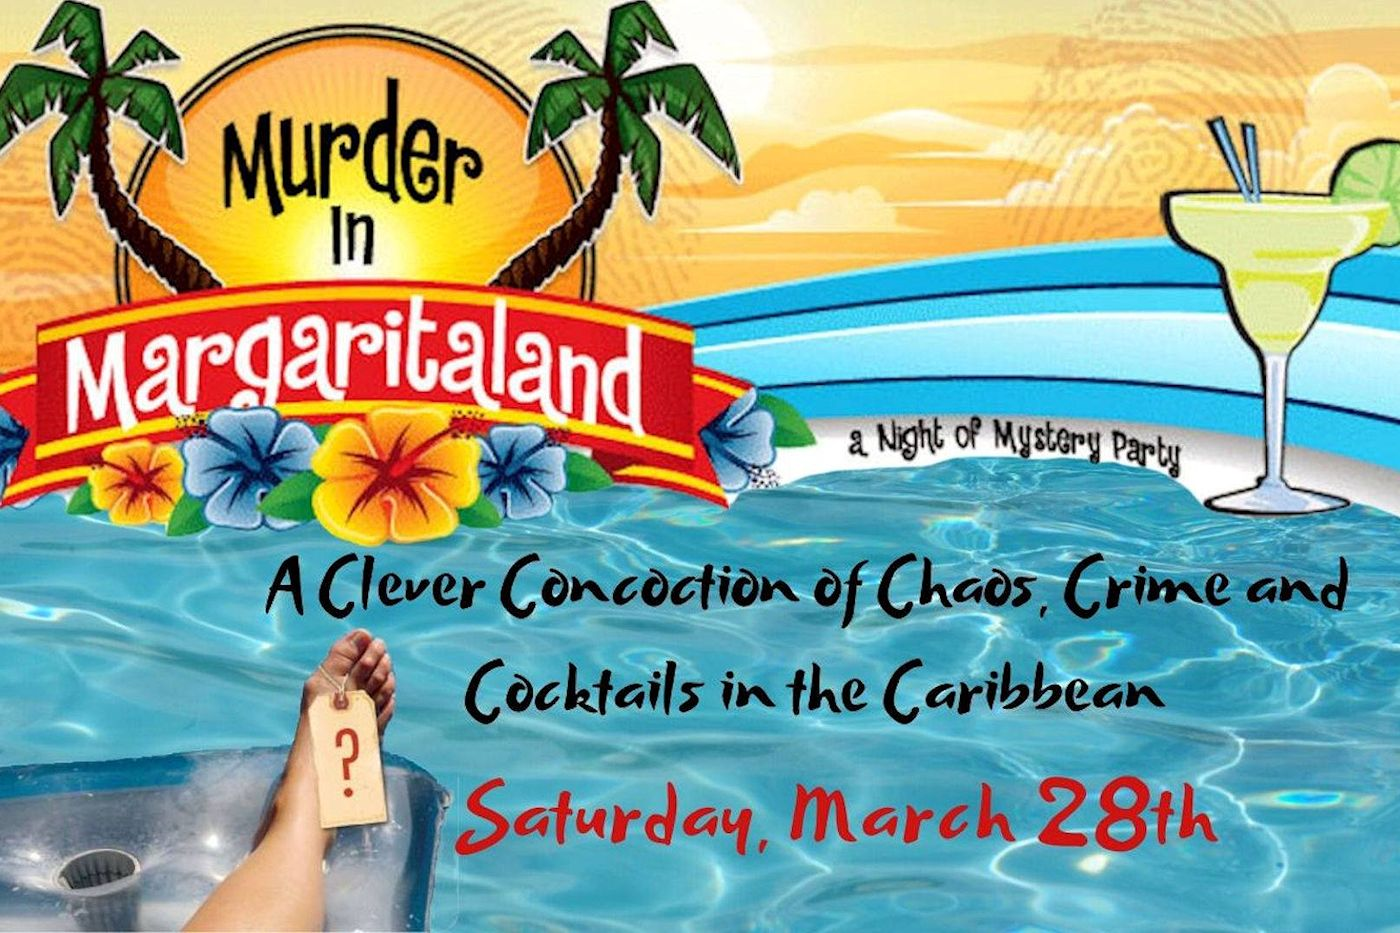 Murder in Margaritaville - Murder Mystery at The Lodge on Lake Detroit